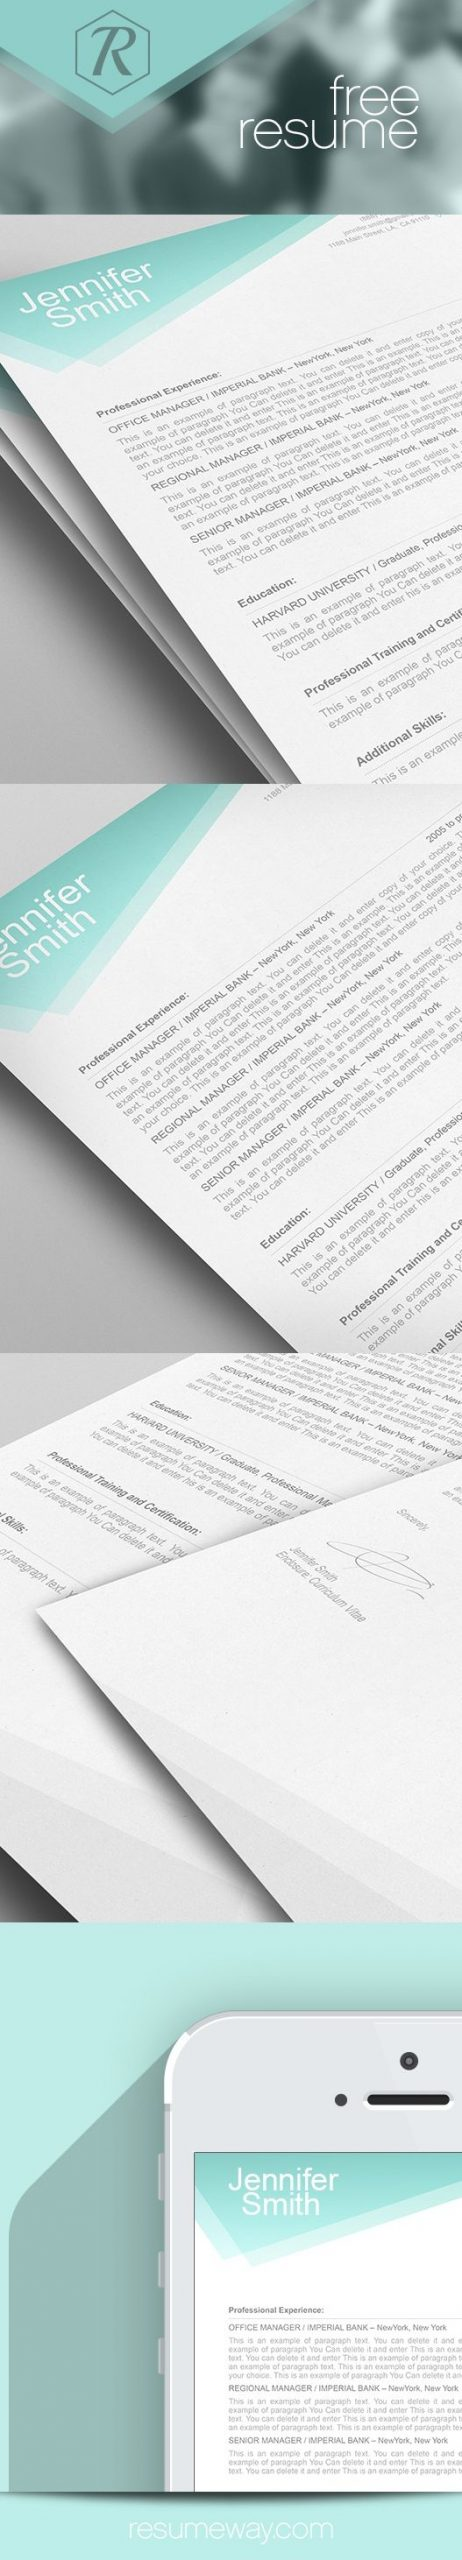 FREE Resume Template Premium line of Resume & Cover Letter Templates edit with MS Word Apple Pages resume free resumes resumes